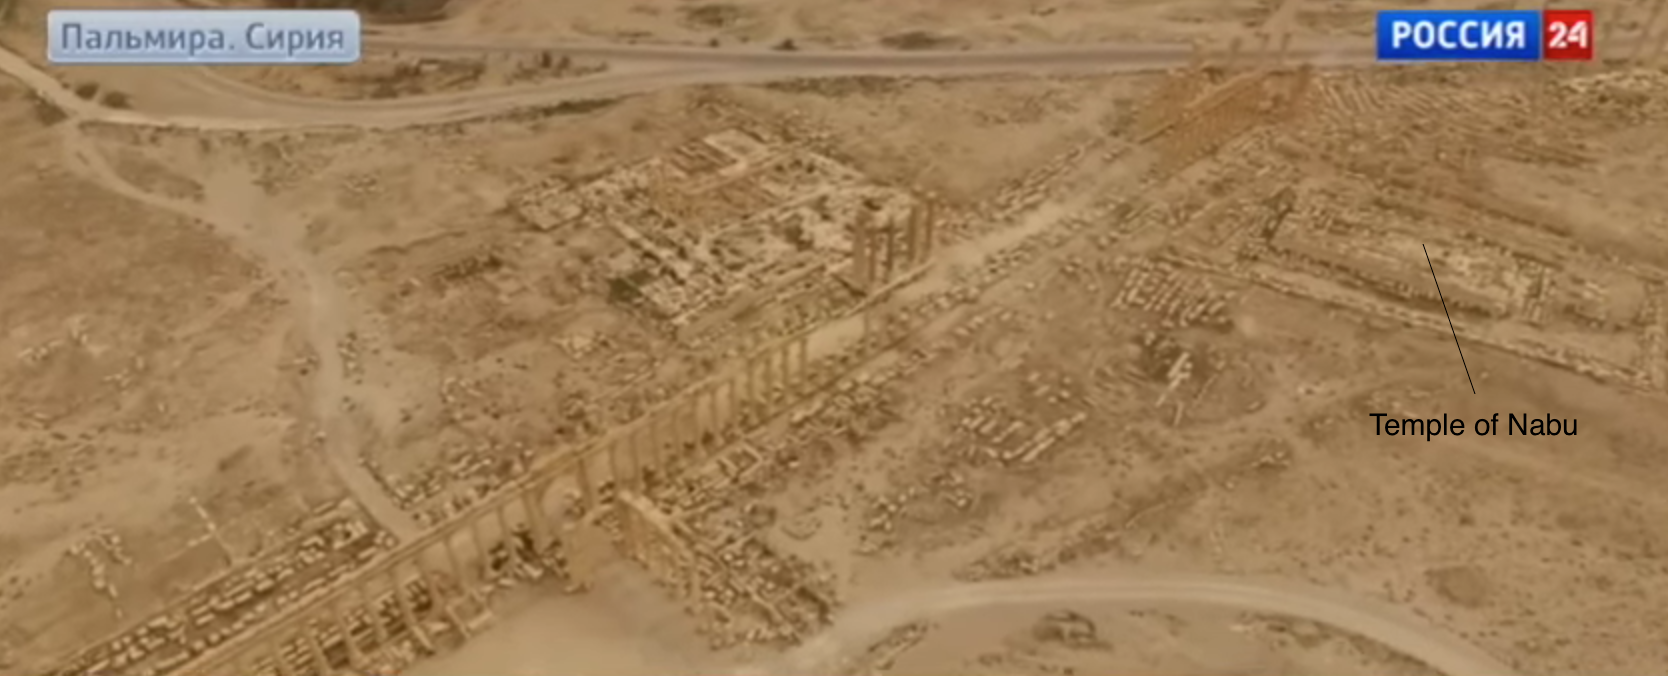 Figure 54. Drone footage of Temple of Nabu (facing northeast, far right) (Russia 24; March 25; 2016)